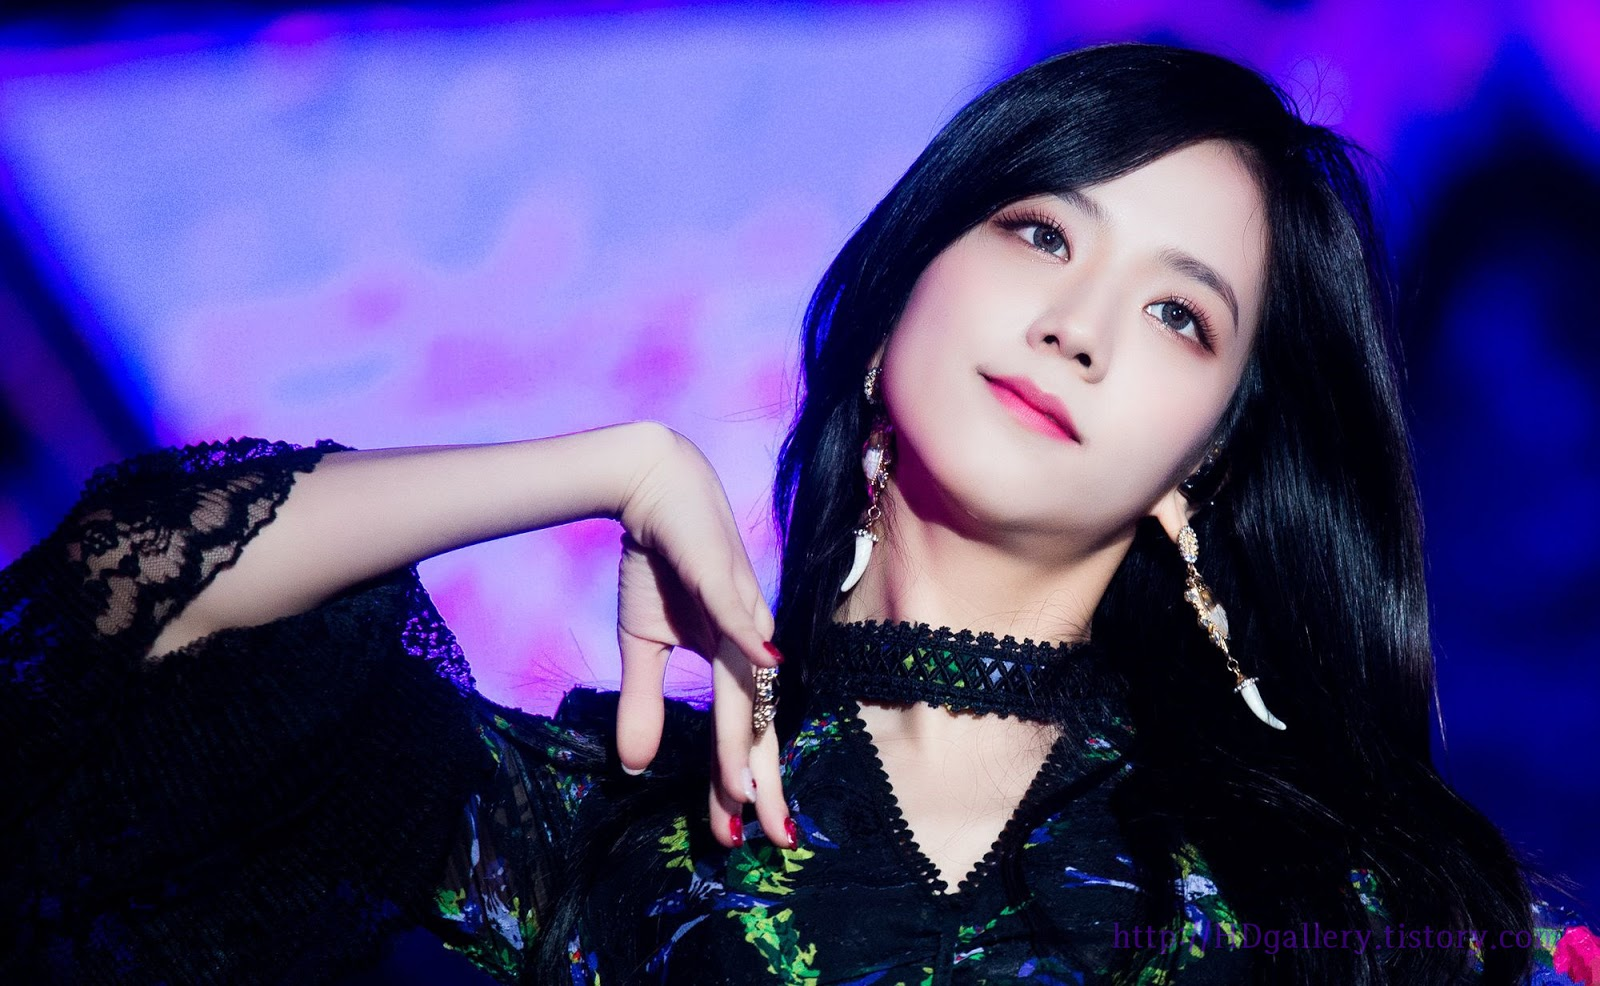 While Jisoo's stage makeup consists of color contacts, coral to pink shades of eyeshadow, eyeliner and brows on fleek, and vibrant lip tones, she looks ...